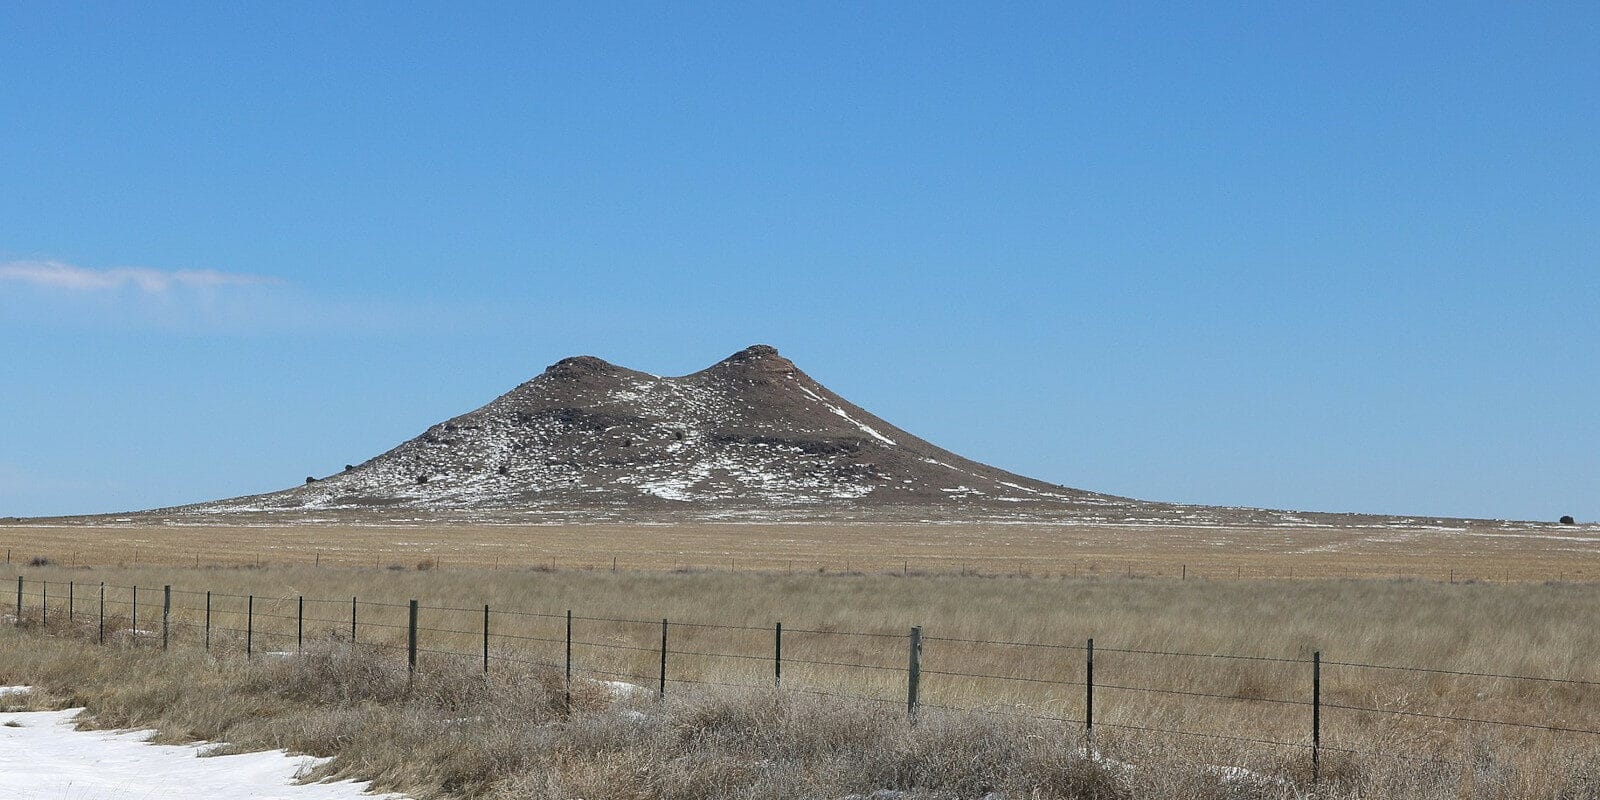 Image of the Two Buttes Mountain in Prowers County, Colorado